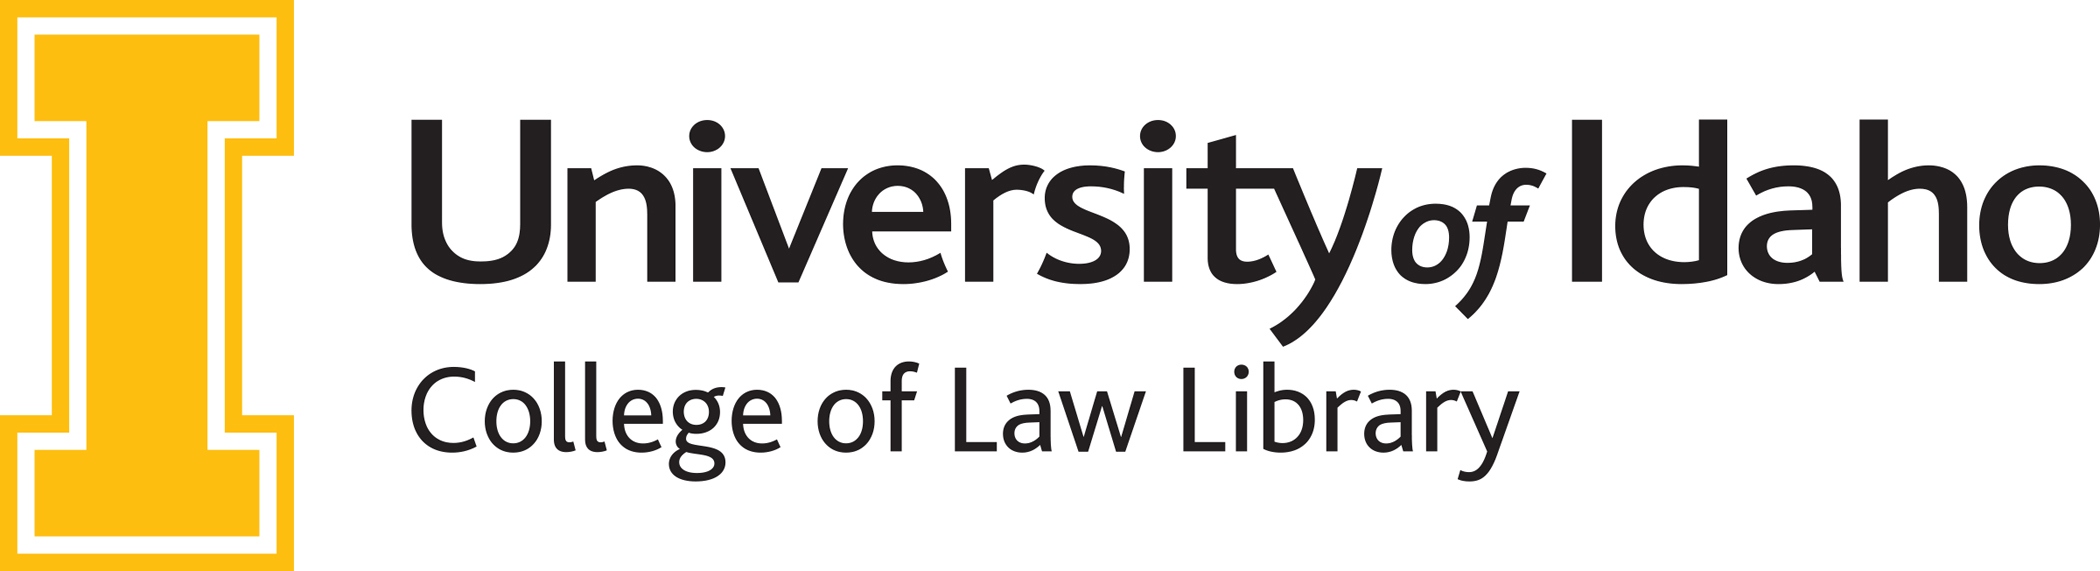 college of law library logo with gold I